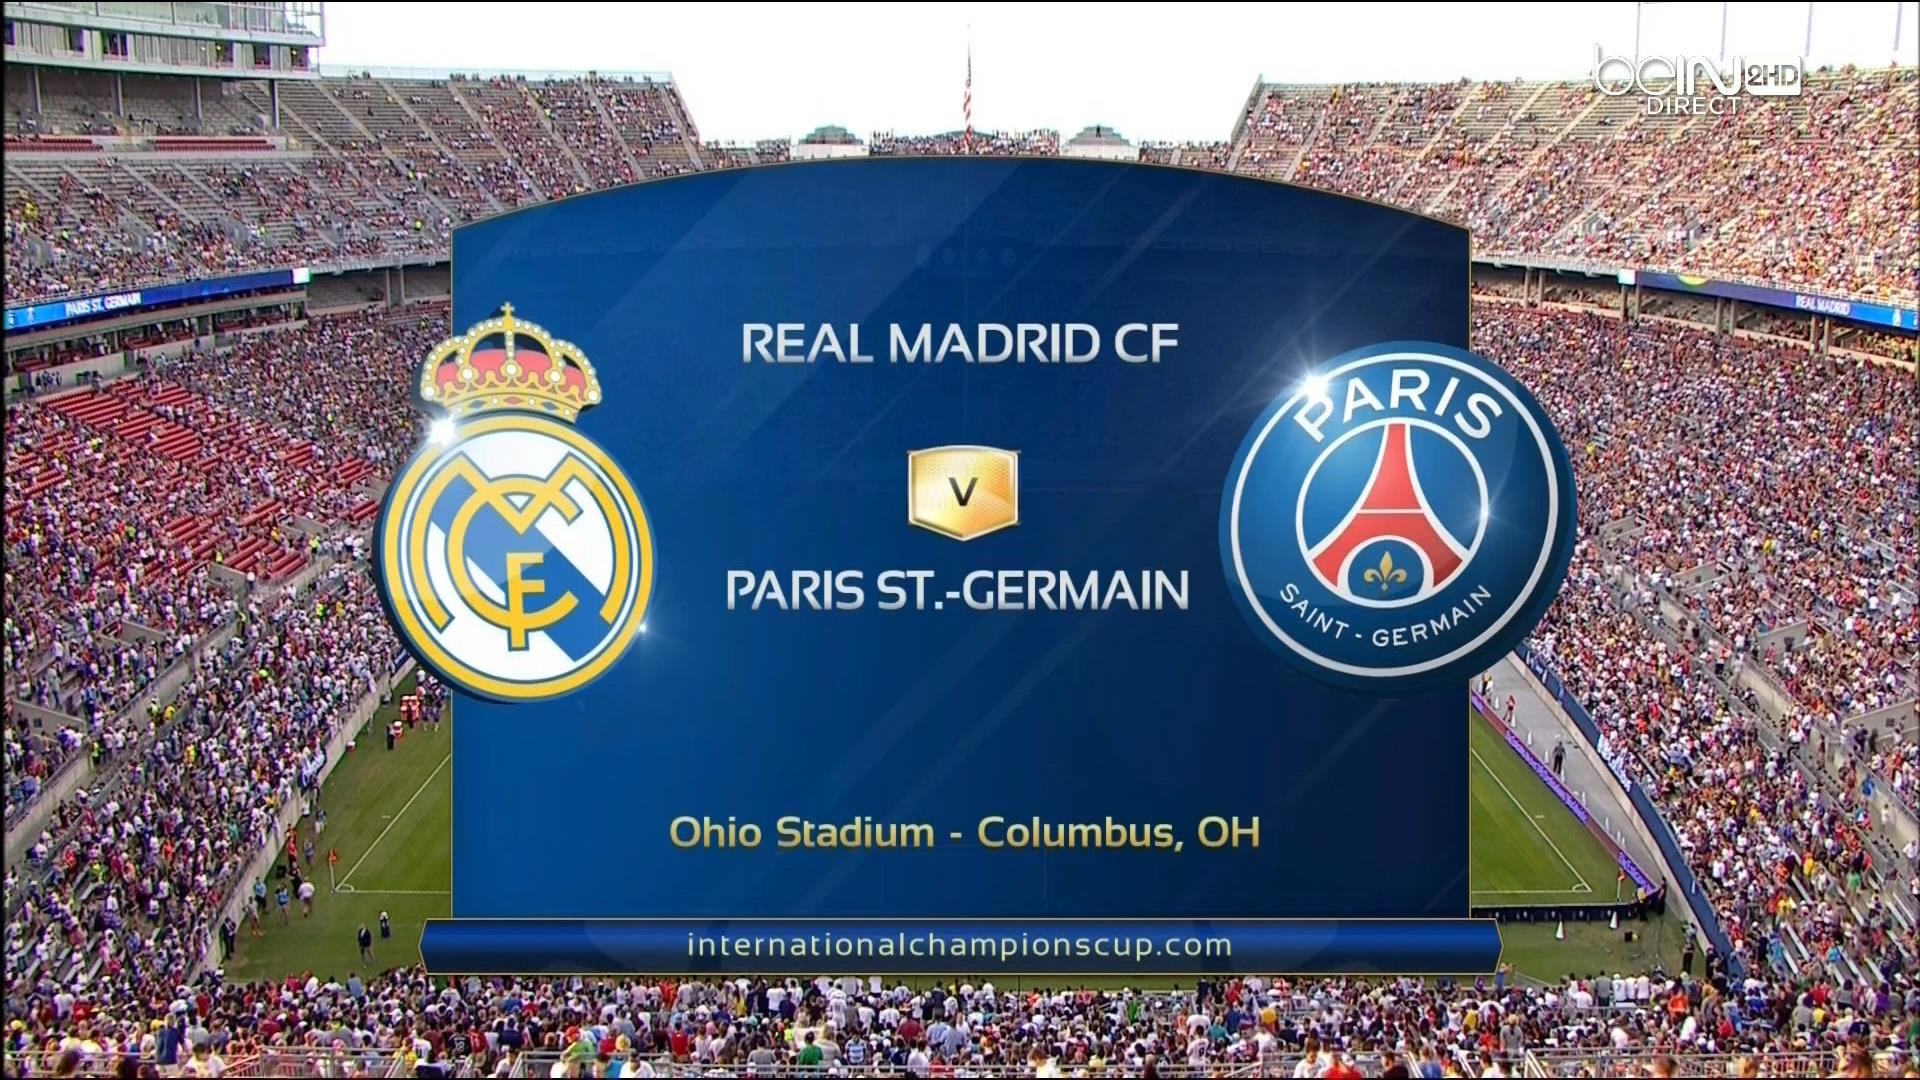 FUTBOL: ICC - Real Madrid vs. Paris Saint-Germain - 27/07/20